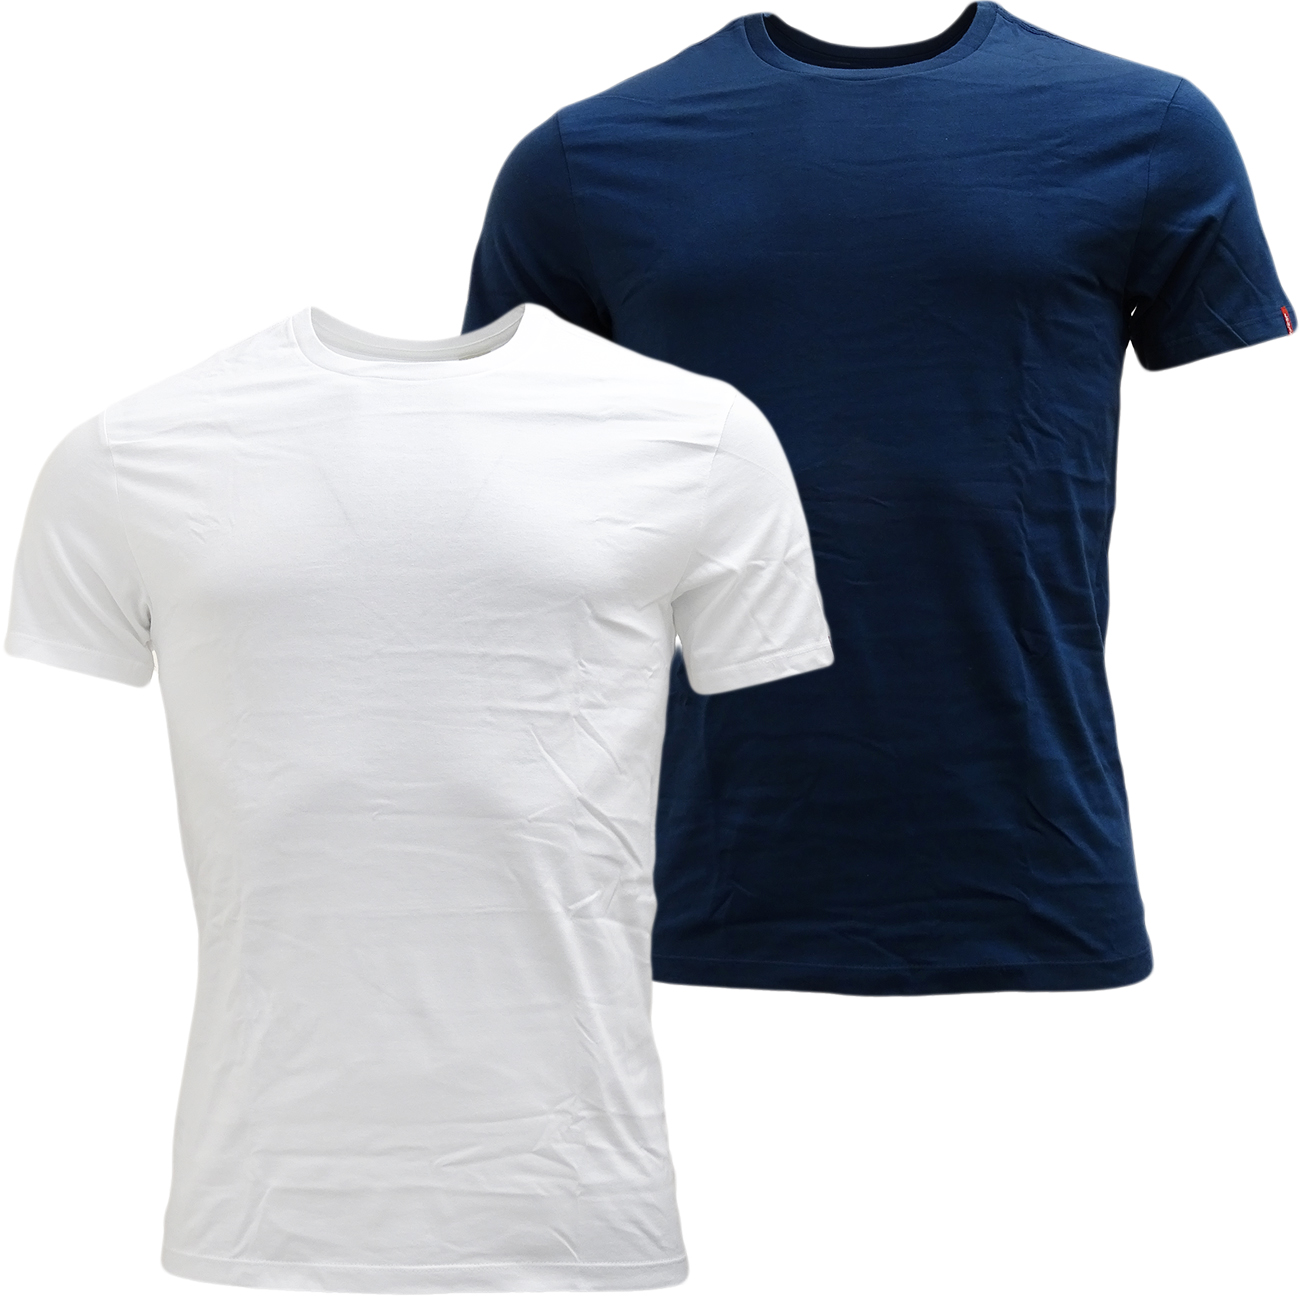 Levi Strauss T Shirt - Slim Fit -Pack of 2 | T-Shirts | Mr ...